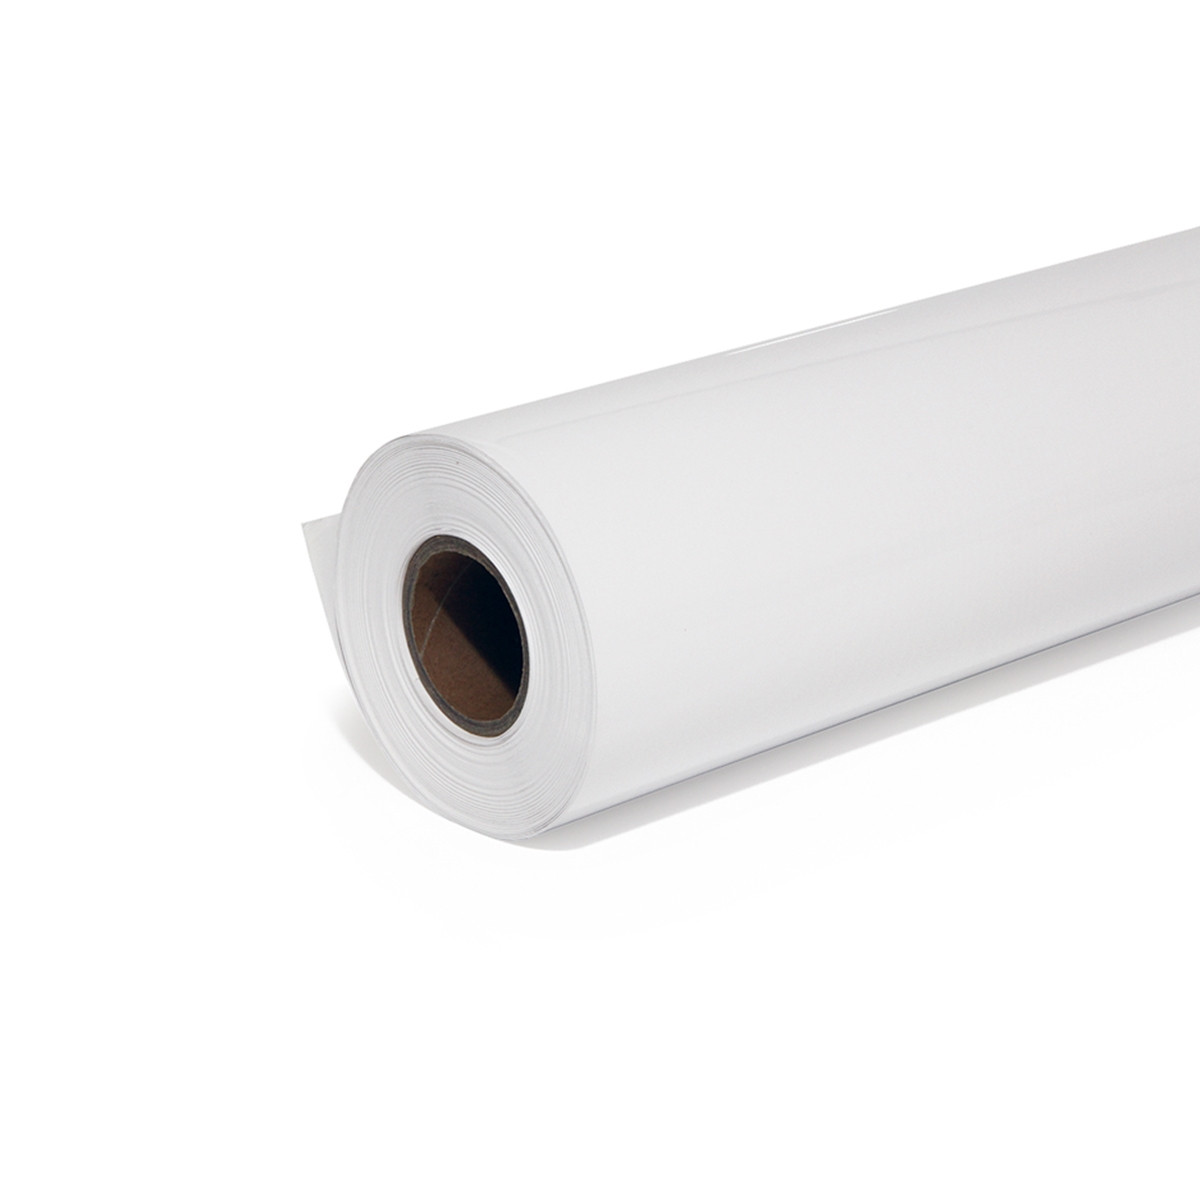 Papel para Plotter Fotográfico Glossy Brilhante | 180g Rolo 610MM x 30M